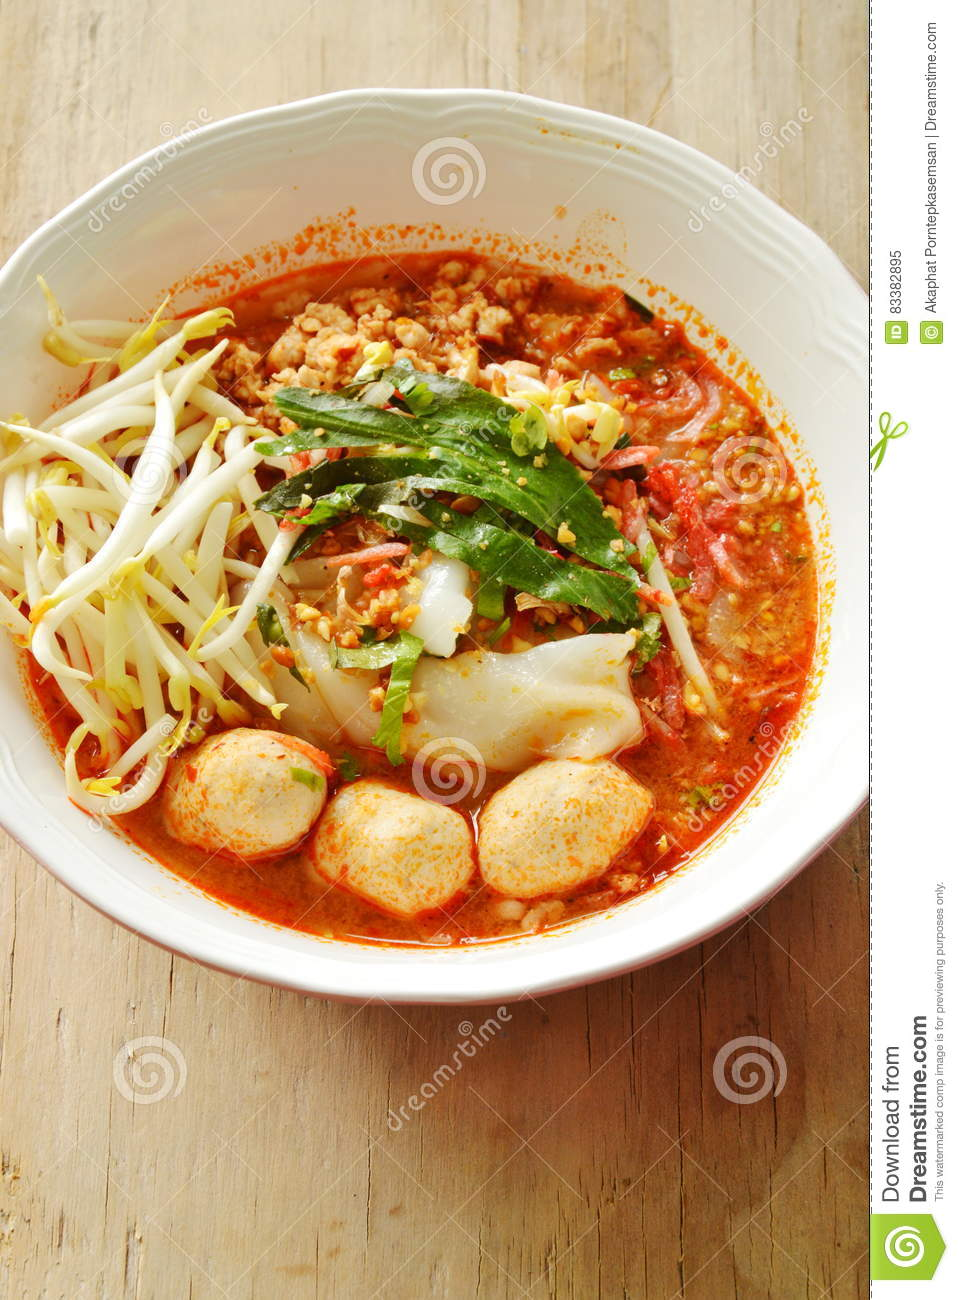 Rice Noodle With Pork Ball In Tom Yum Spicy Soup Topping Fresh.